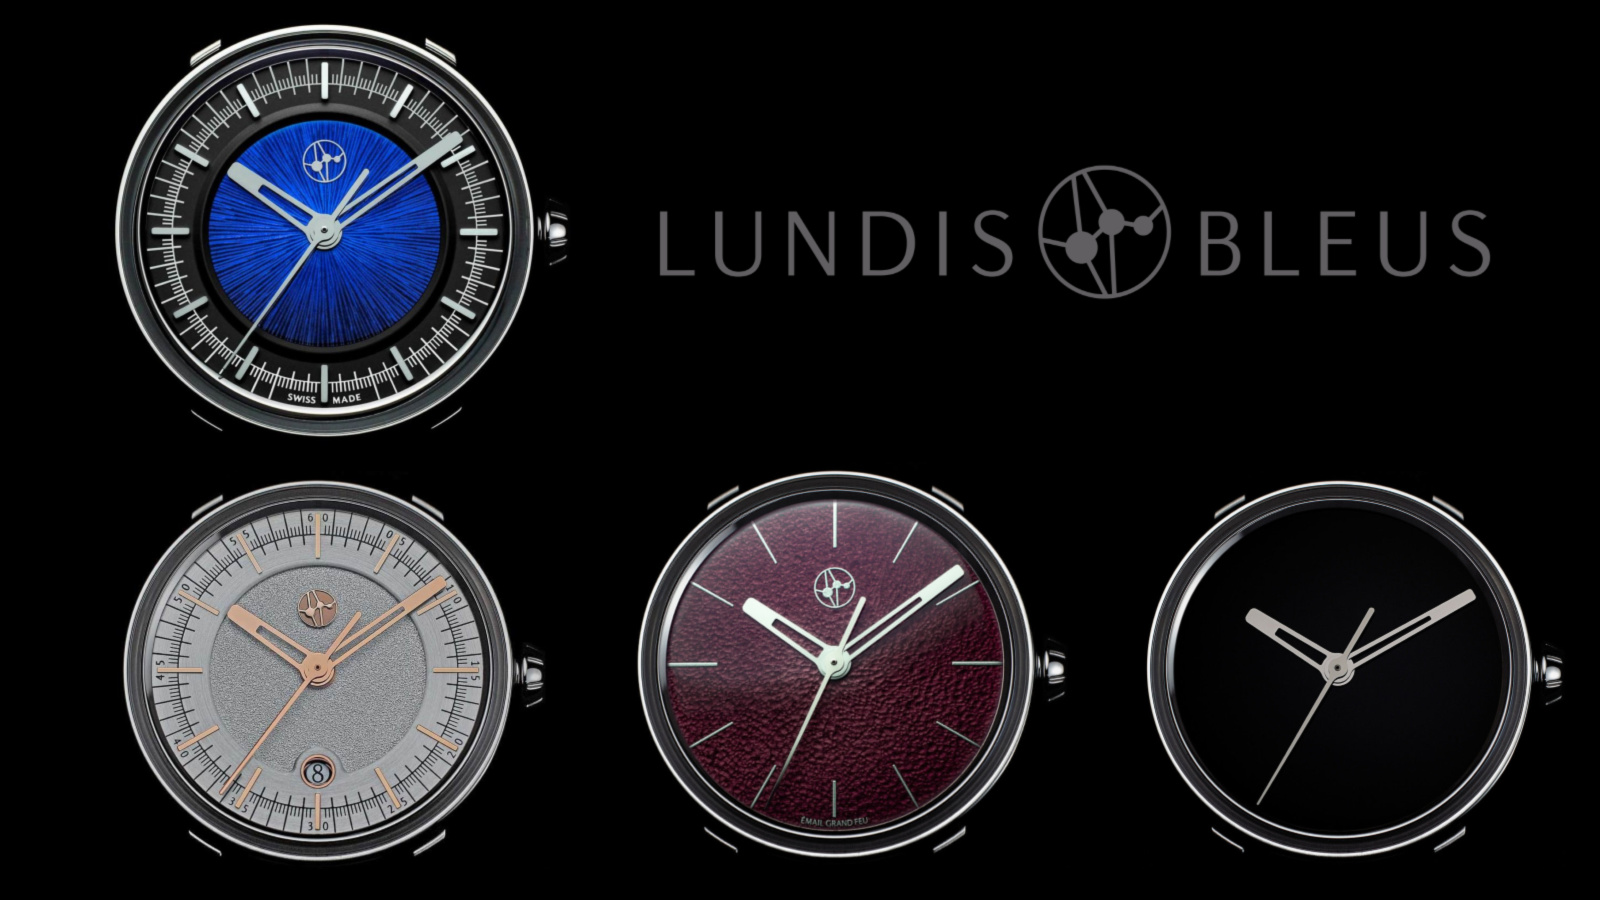 Lundis Bleus Swiss watches by Chronolux Fine Watches